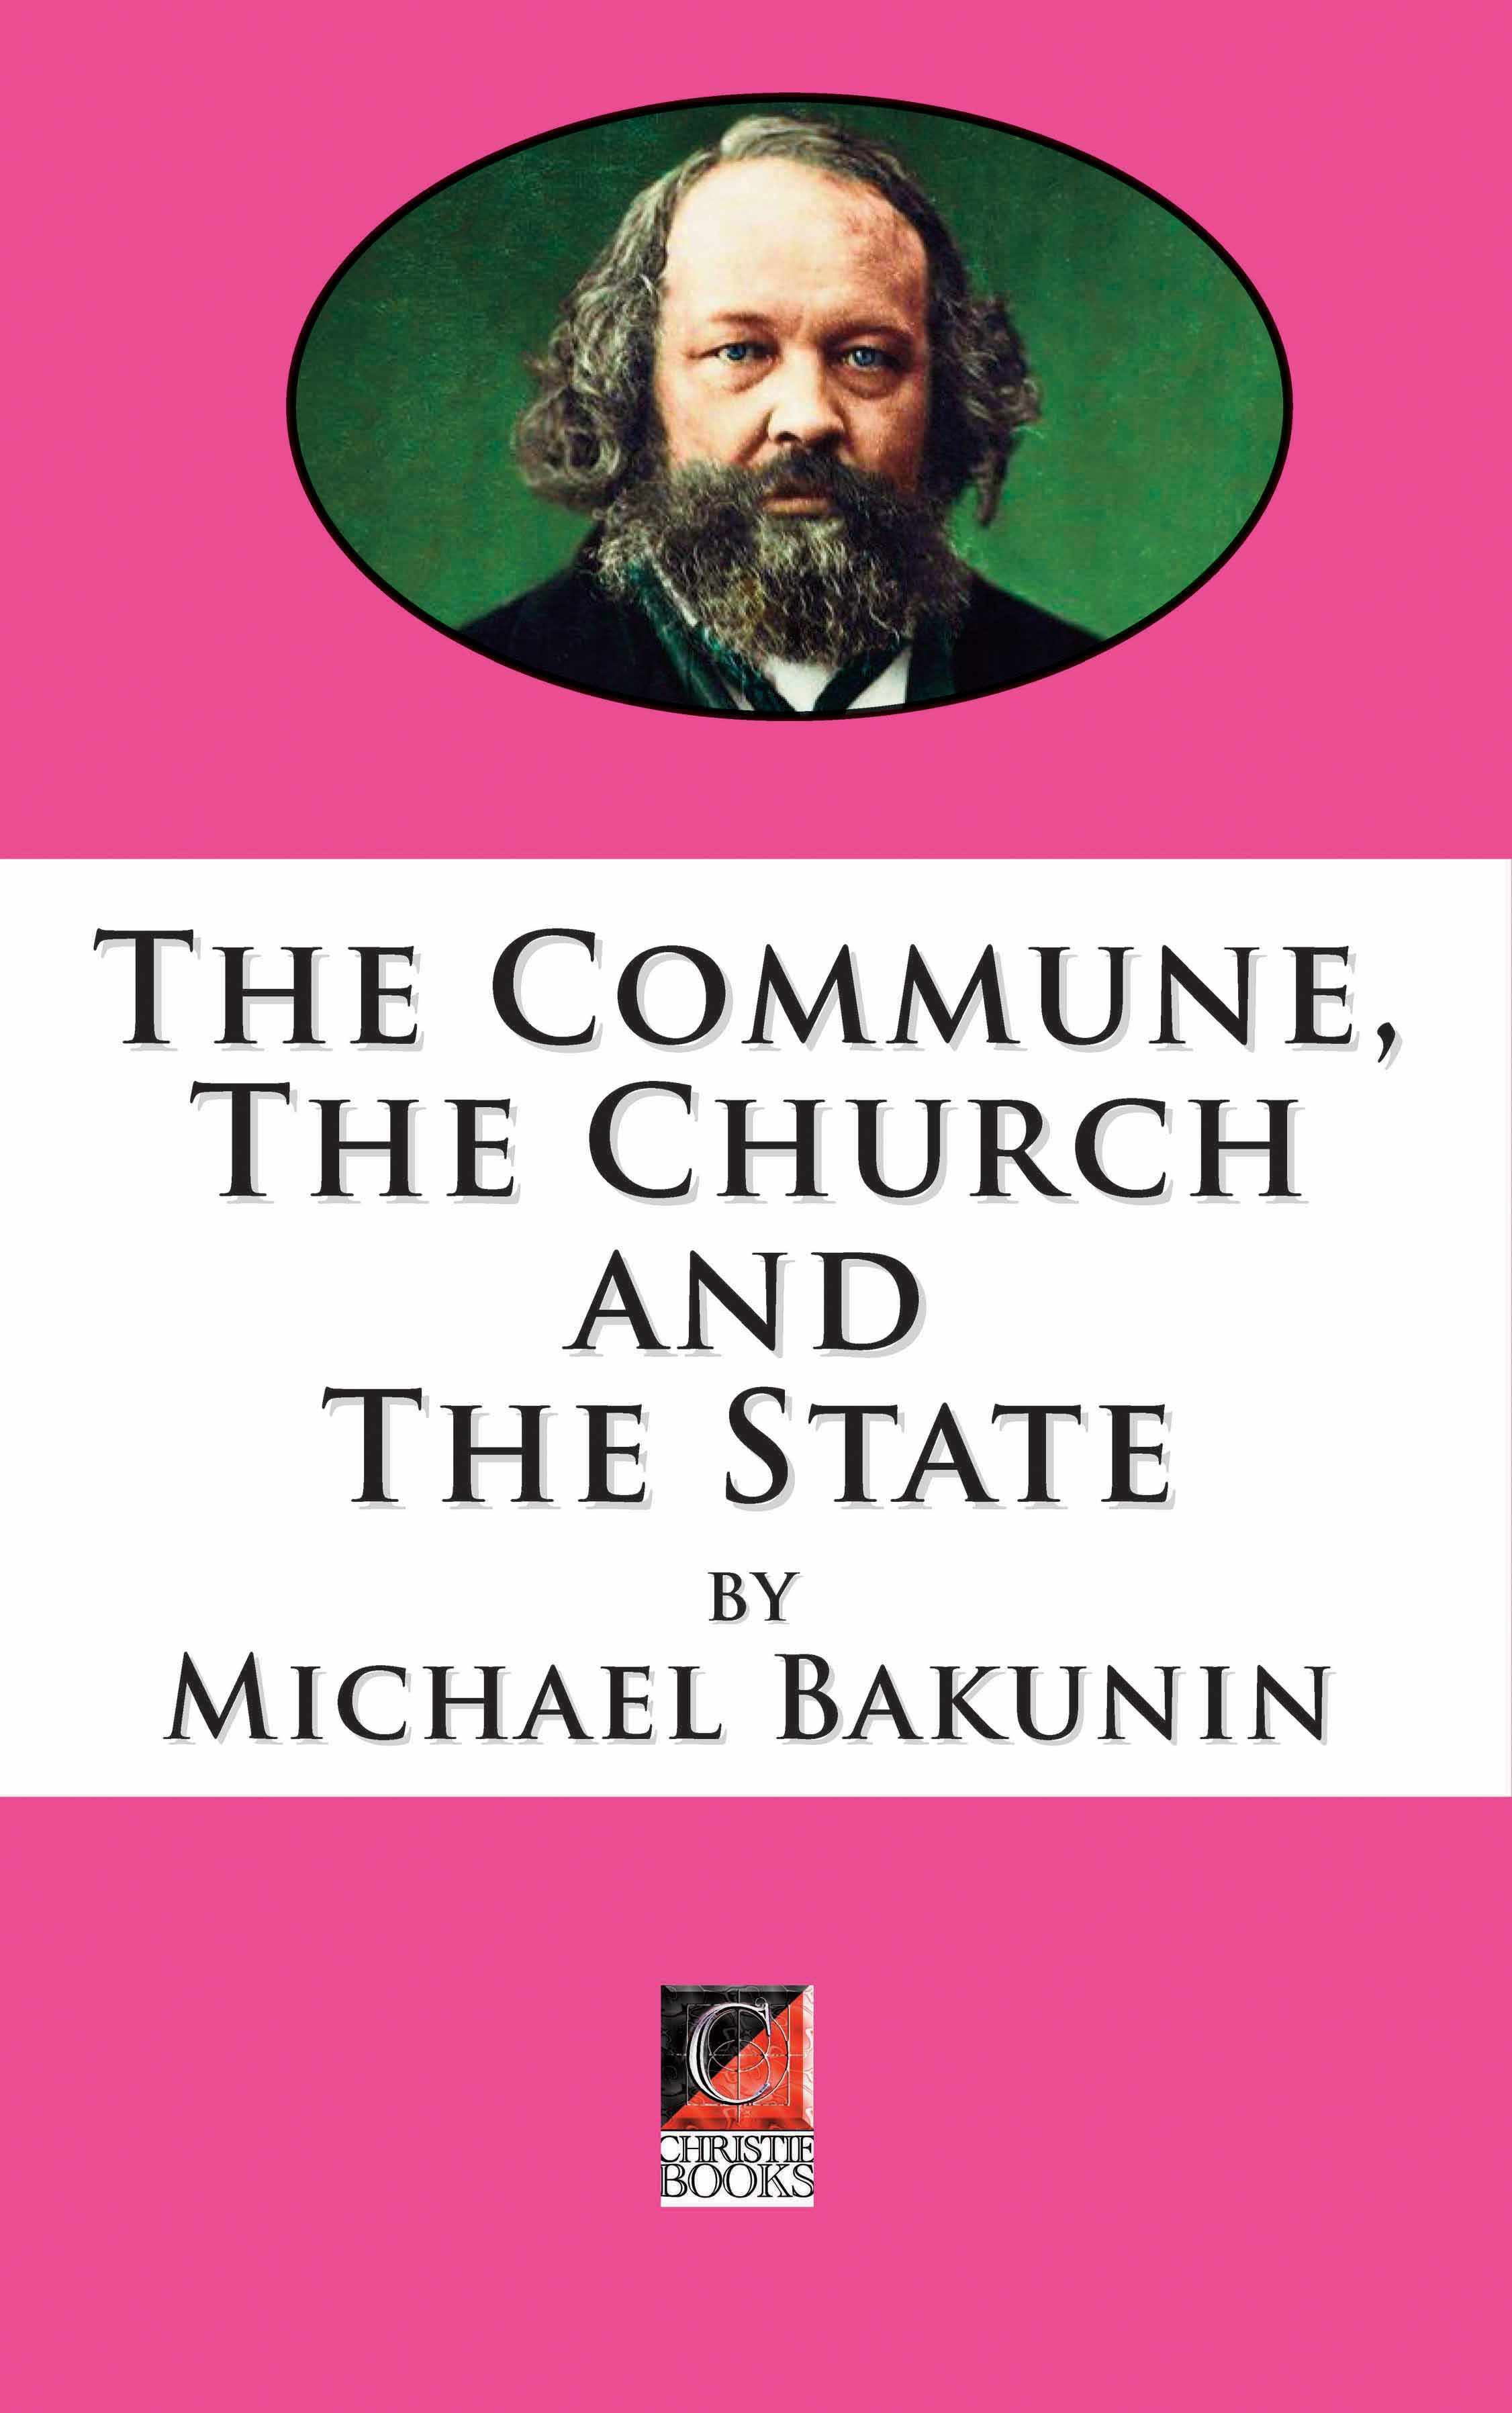 THE COMMUNE, THE CHURCH AND THE STATE — Michael Bakunin